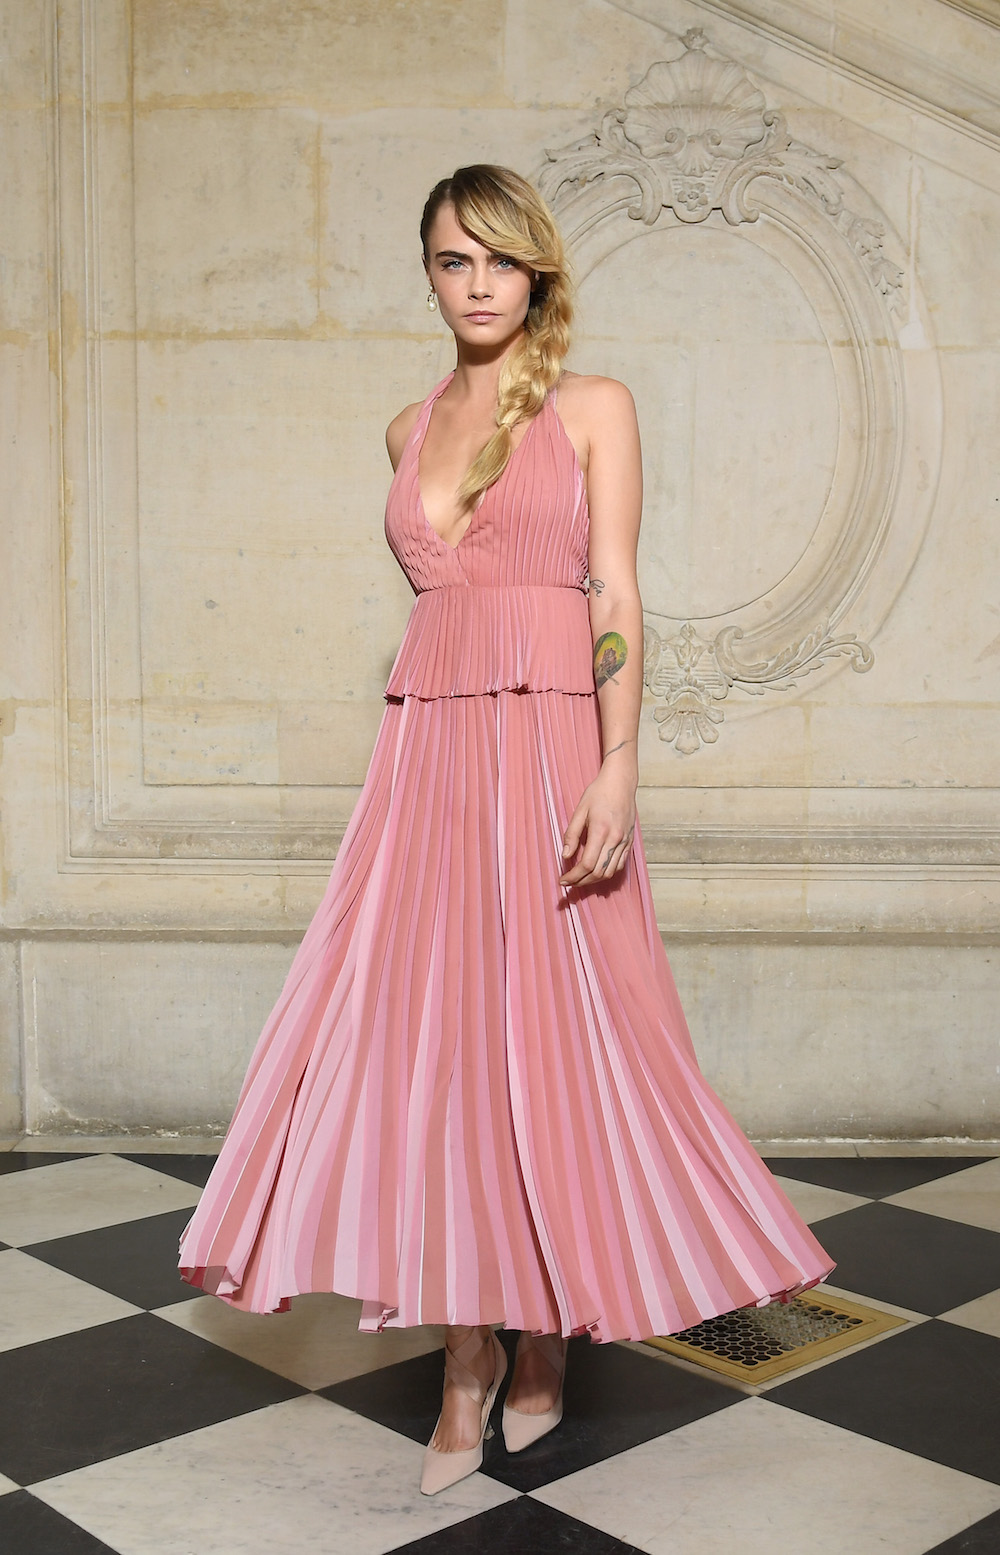 Cara Delevingne in Dior Fall 2019 pink pleated silk dress, and Dior shoes.